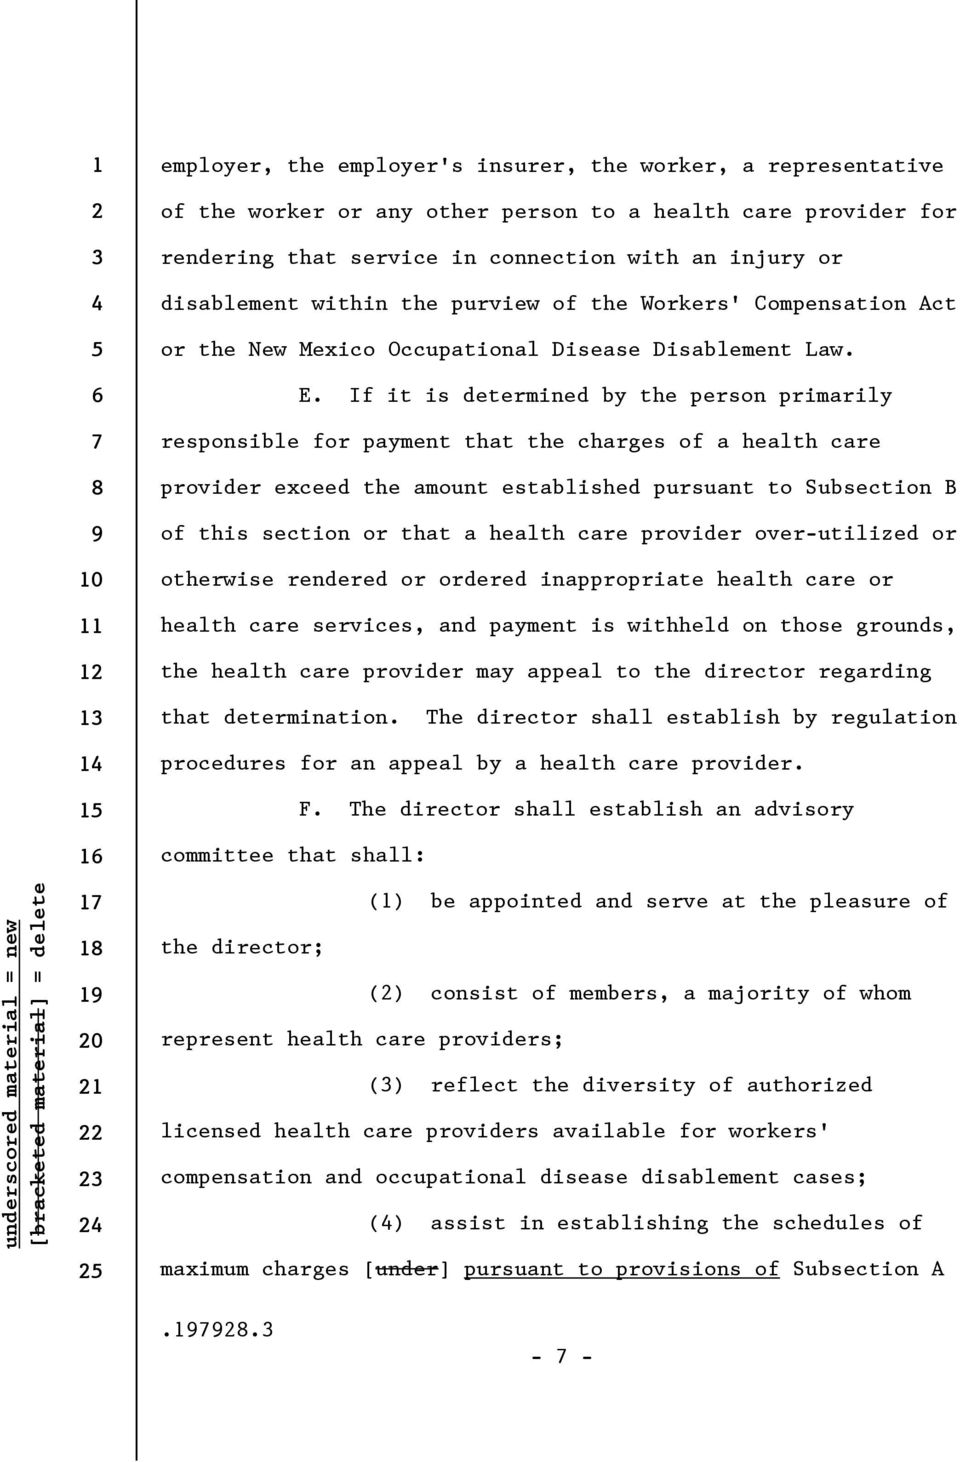 If it is determined by the person primarily responsible for payment that the charges of a health care provider exceed the amount established pursuant to Subsection B of this section or that a health